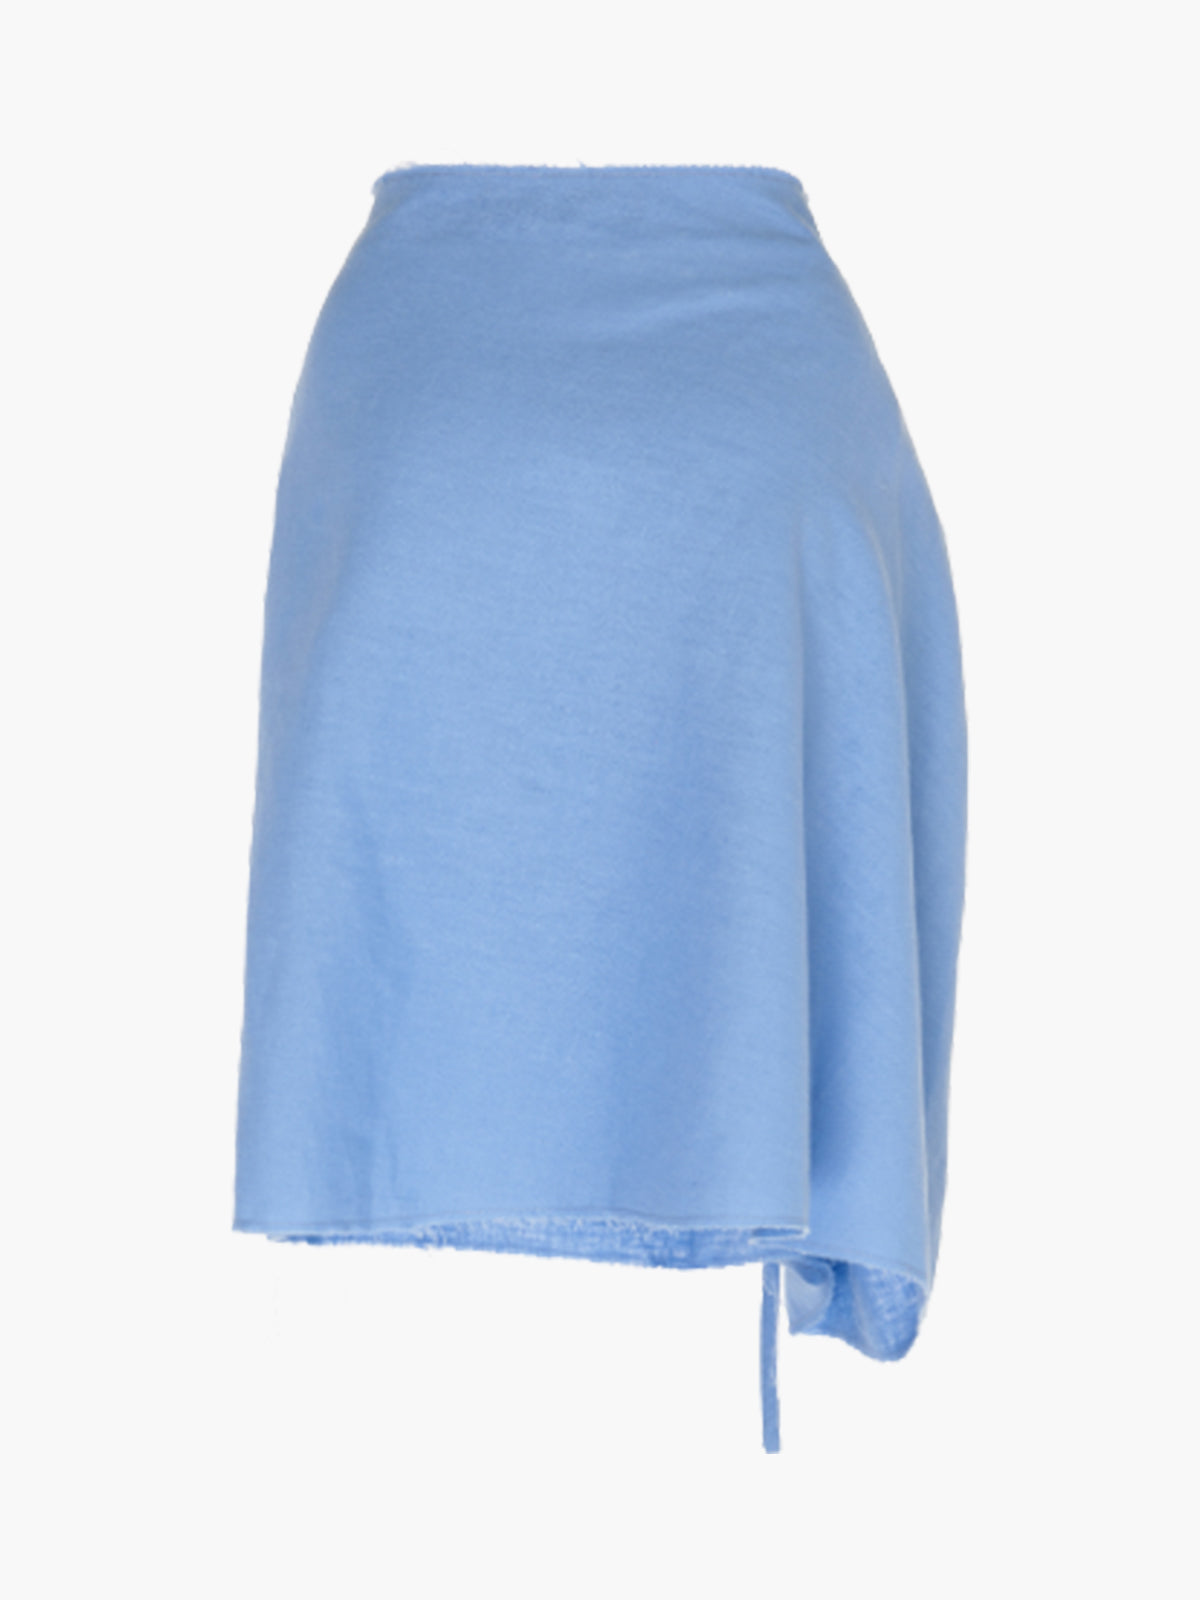 Zinnia Skirt | Blue Linen